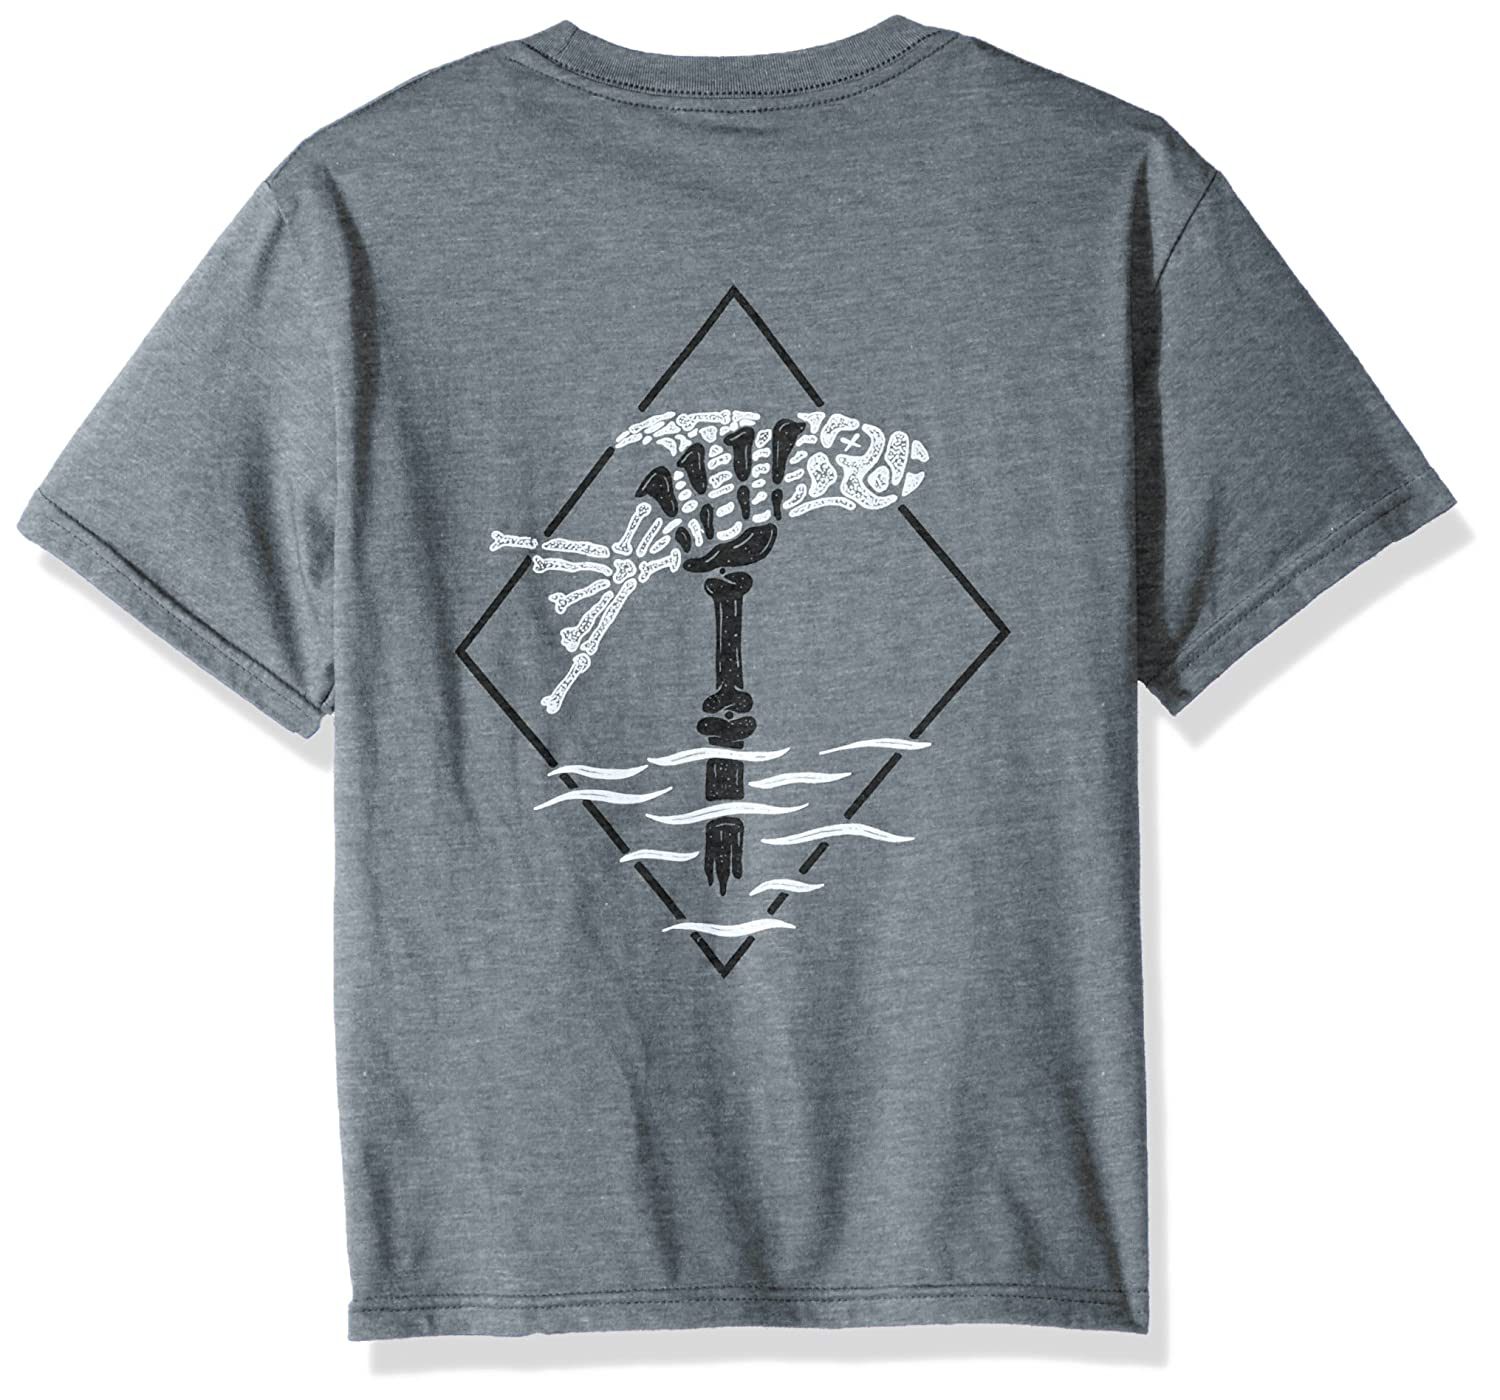 ONEILL Big Boys Modern Fit Logo Graphic Tee